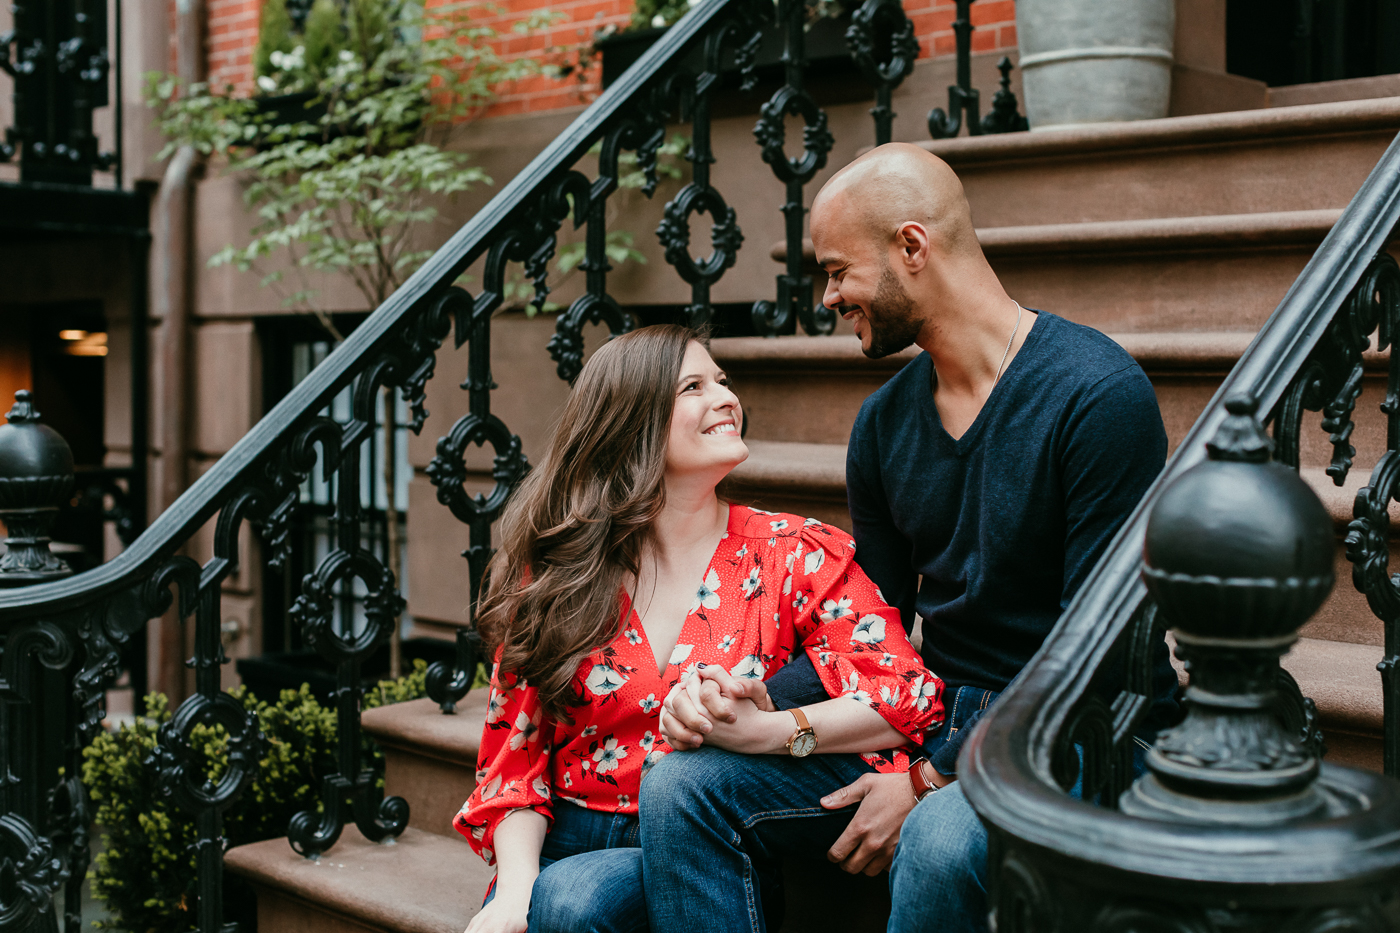 West-Village-Engagement-Photos-NYC-Wedding-Photographer-14.JPG